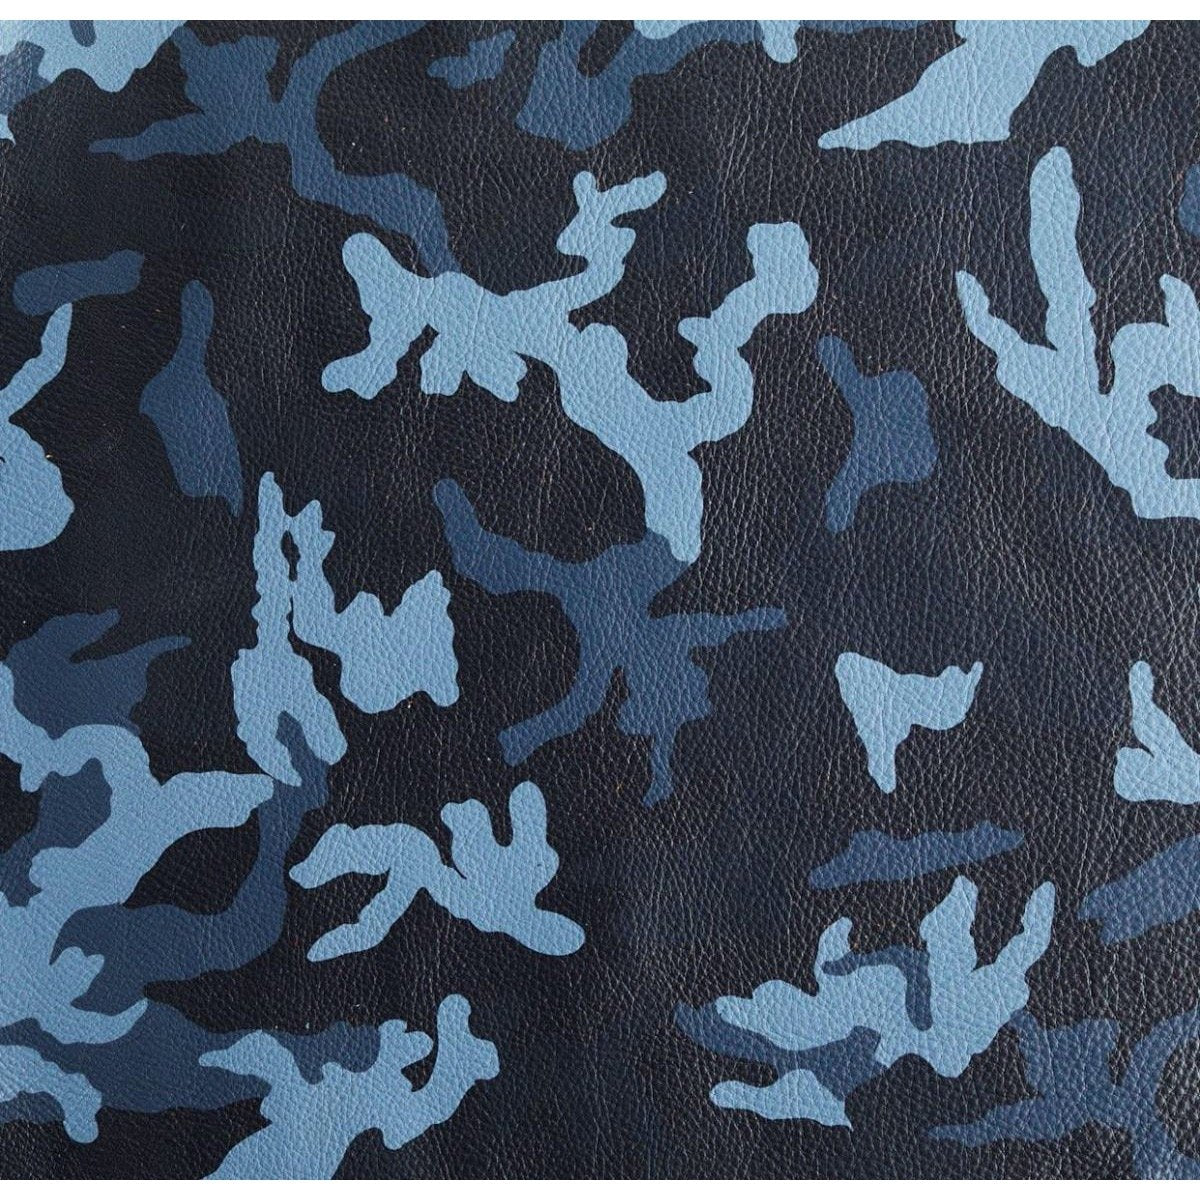 Camo Print Craft Cut 8.5X11 Navy